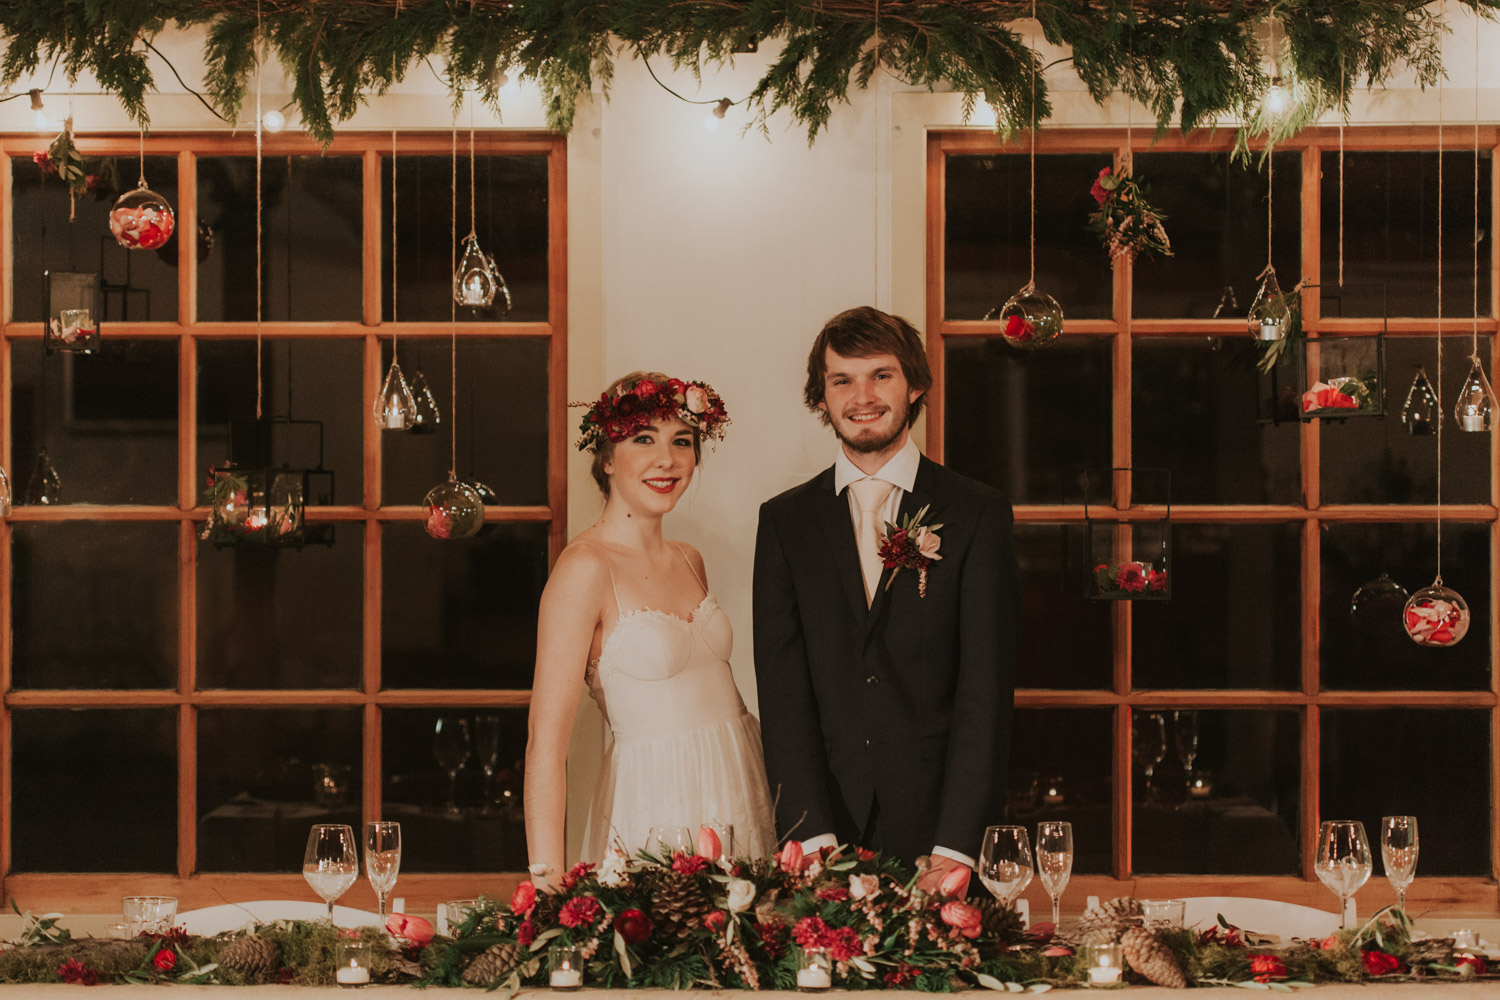 Bride and Groom at their wedding reception